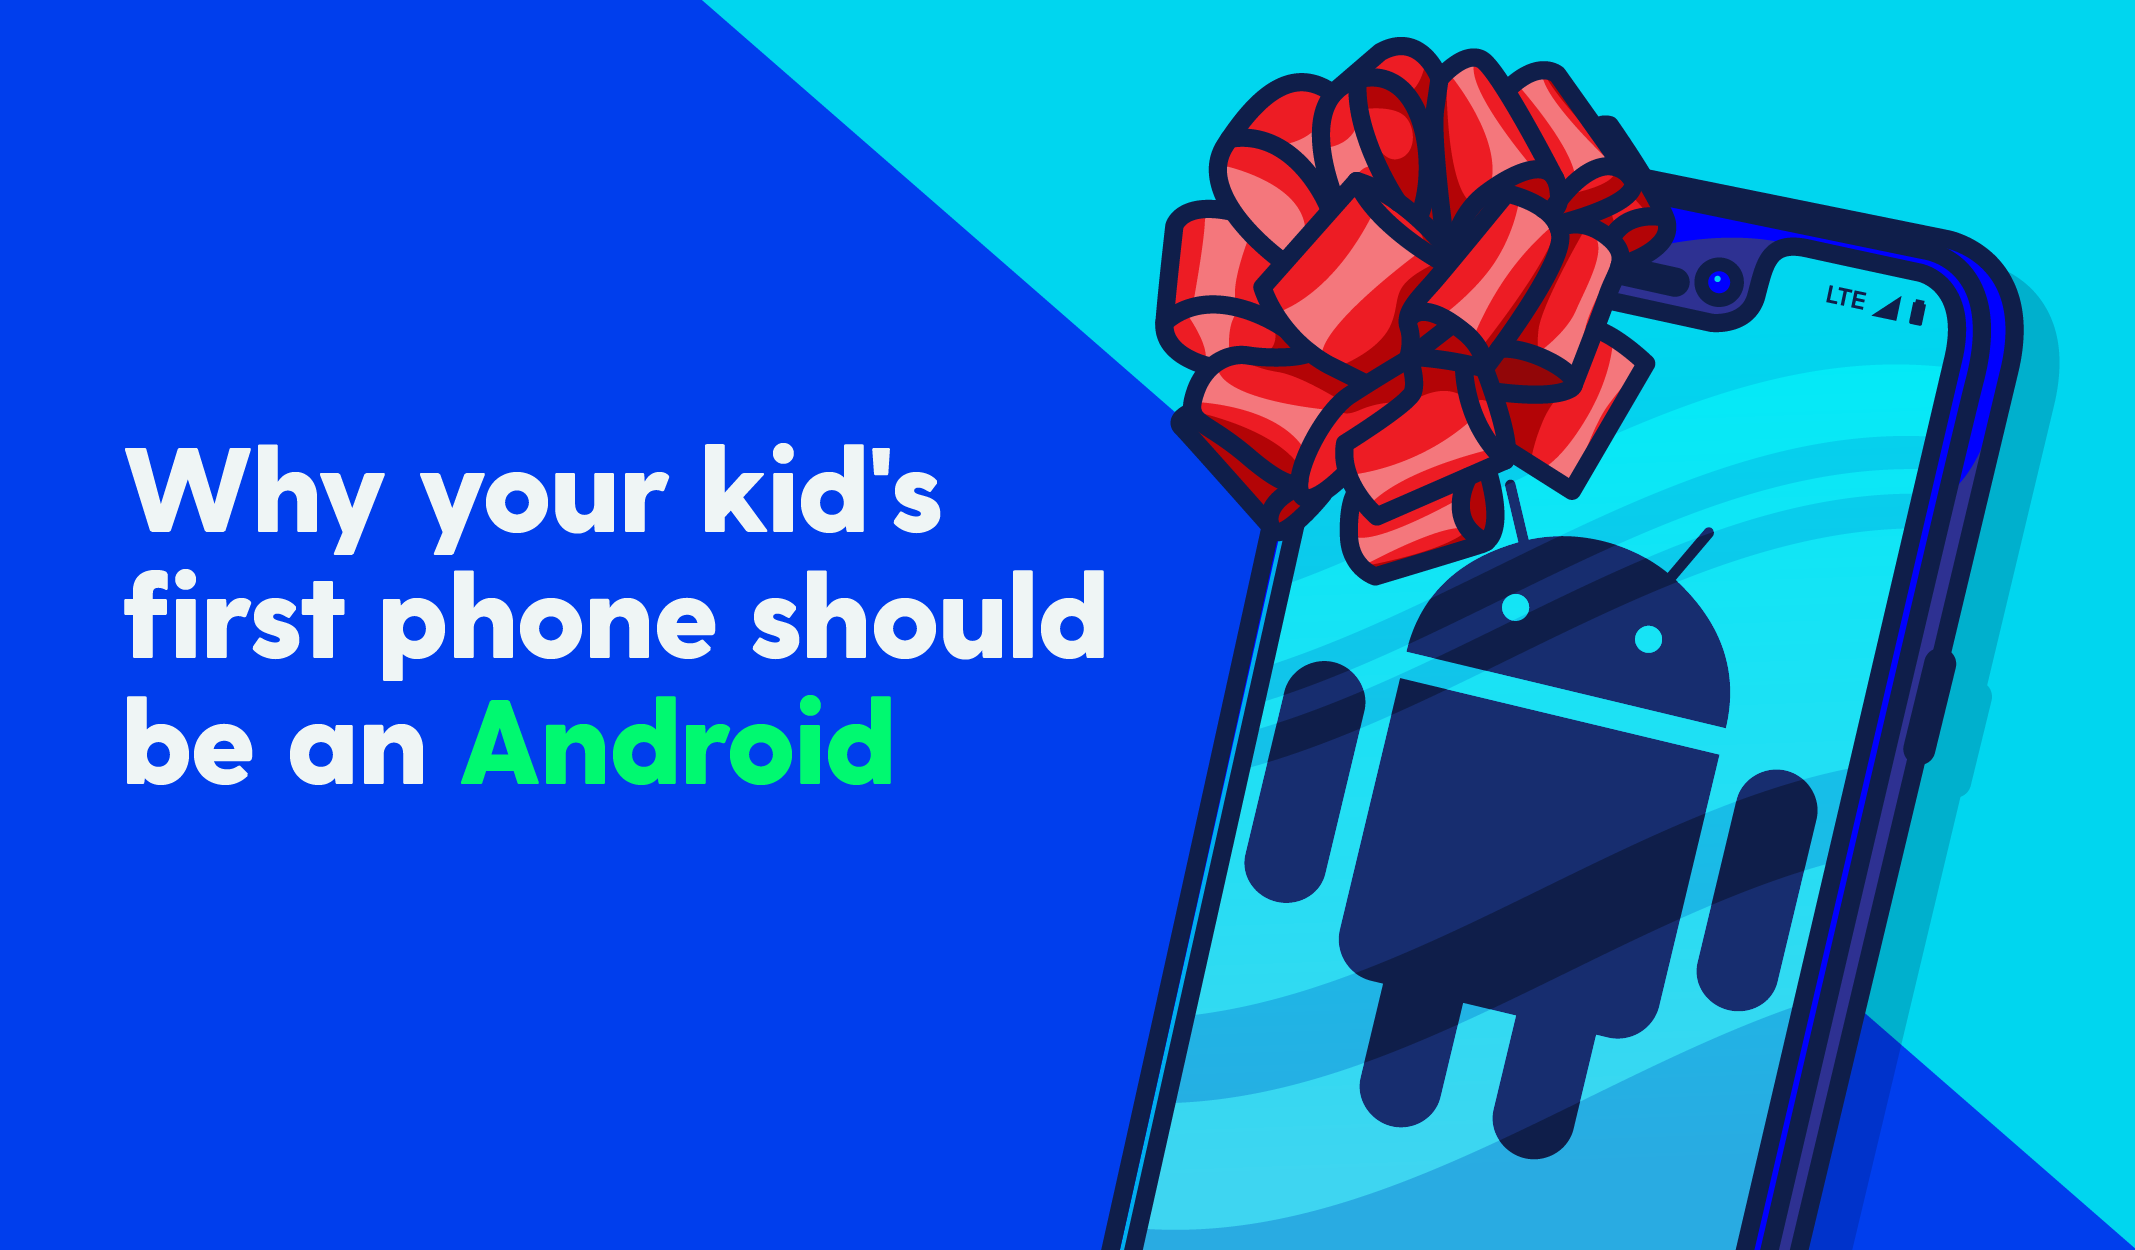 why your kid's first phone should be an android